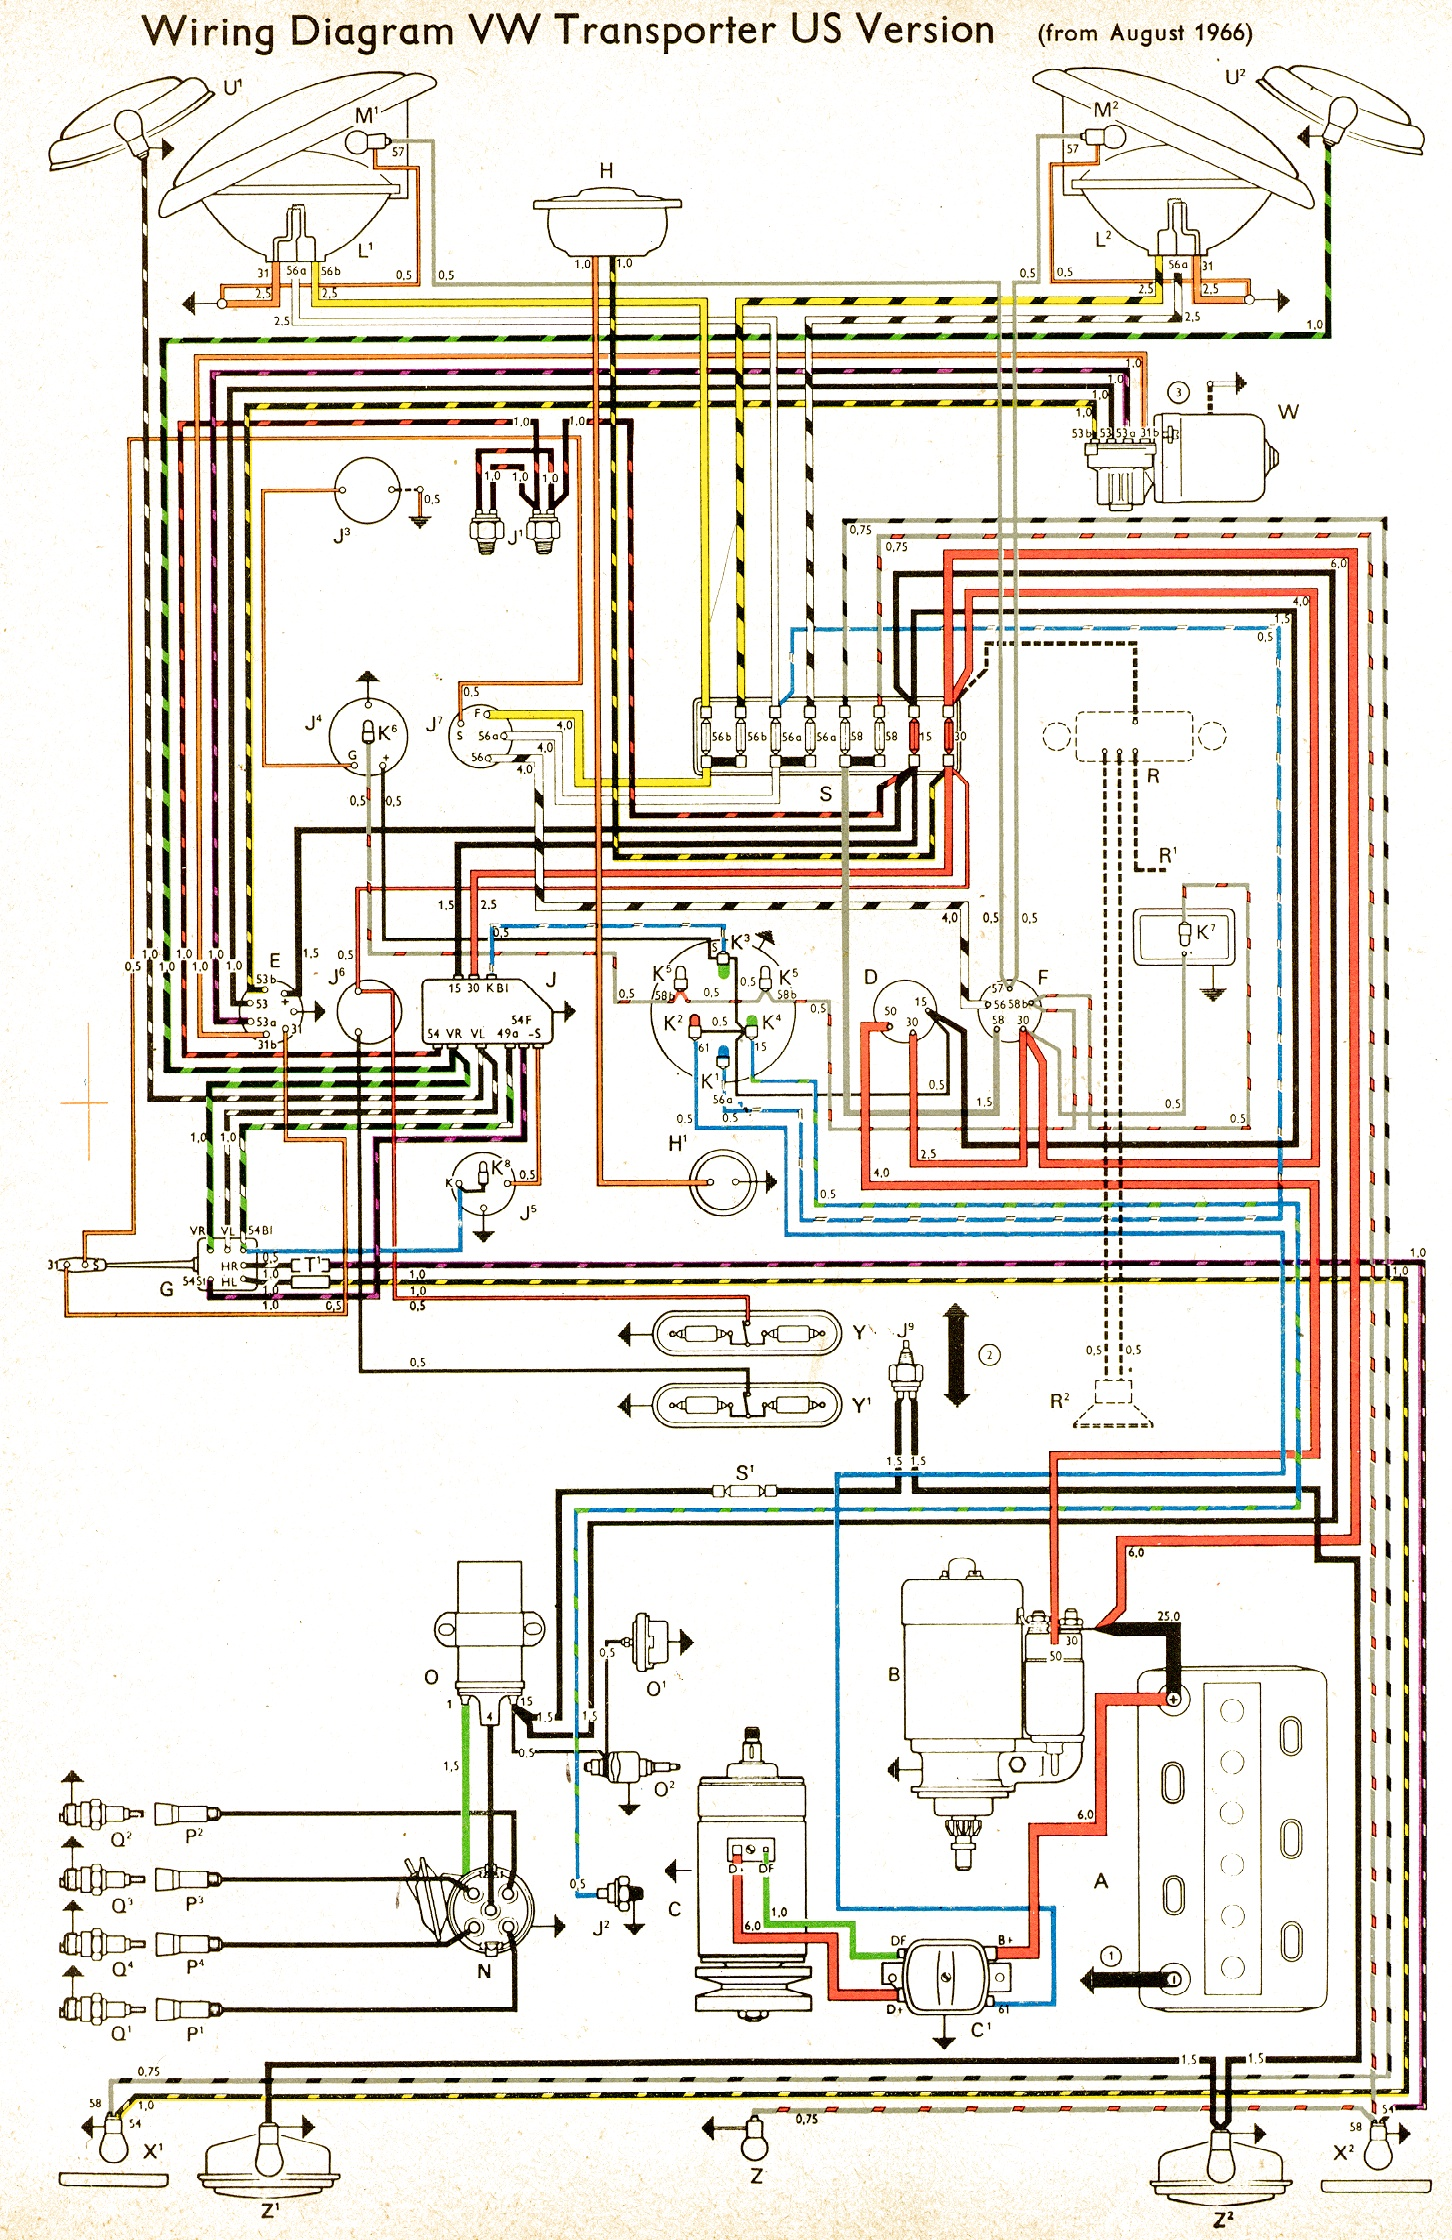 Vw Bus Wiring Diagram: VintageBus.Com - VW Bus (and other) Wiring Diagrams,Design